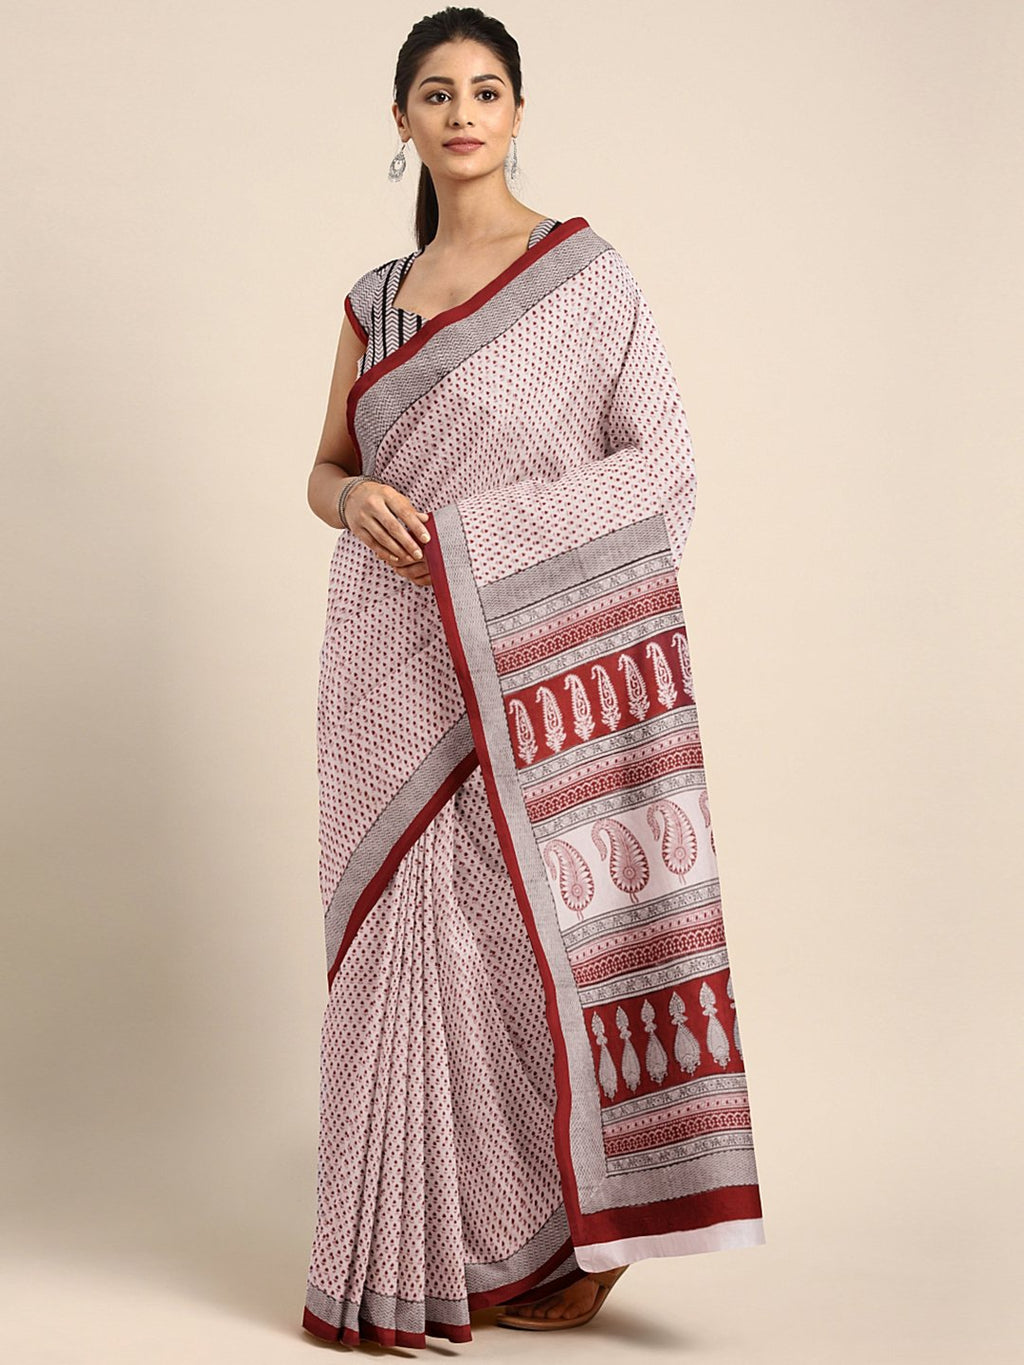 Peach-Coloured Maroon Pure Cotton Printed Saree-Saree-Kalakari India-MYBASA0024-Bagh, Cotton, Geographical Indication, Hand Blocks, Hand Crafted, Heritage Prints, Natural Dyes, Sarees, Sustainable Fabrics-[Linen,Ethnic,wear,Fashionista,Handloom,Handicraft,Indigo,blockprint,block,print,Cotton,Chanderi,Blue, latest,classy,party,bollywood,trendy,summer,style,traditional,formal,elegant,unique,style,hand,block,print, dabu,booti,gift,present,glamorous,affordable,collectible,Sari,Saree,printed, holi, D